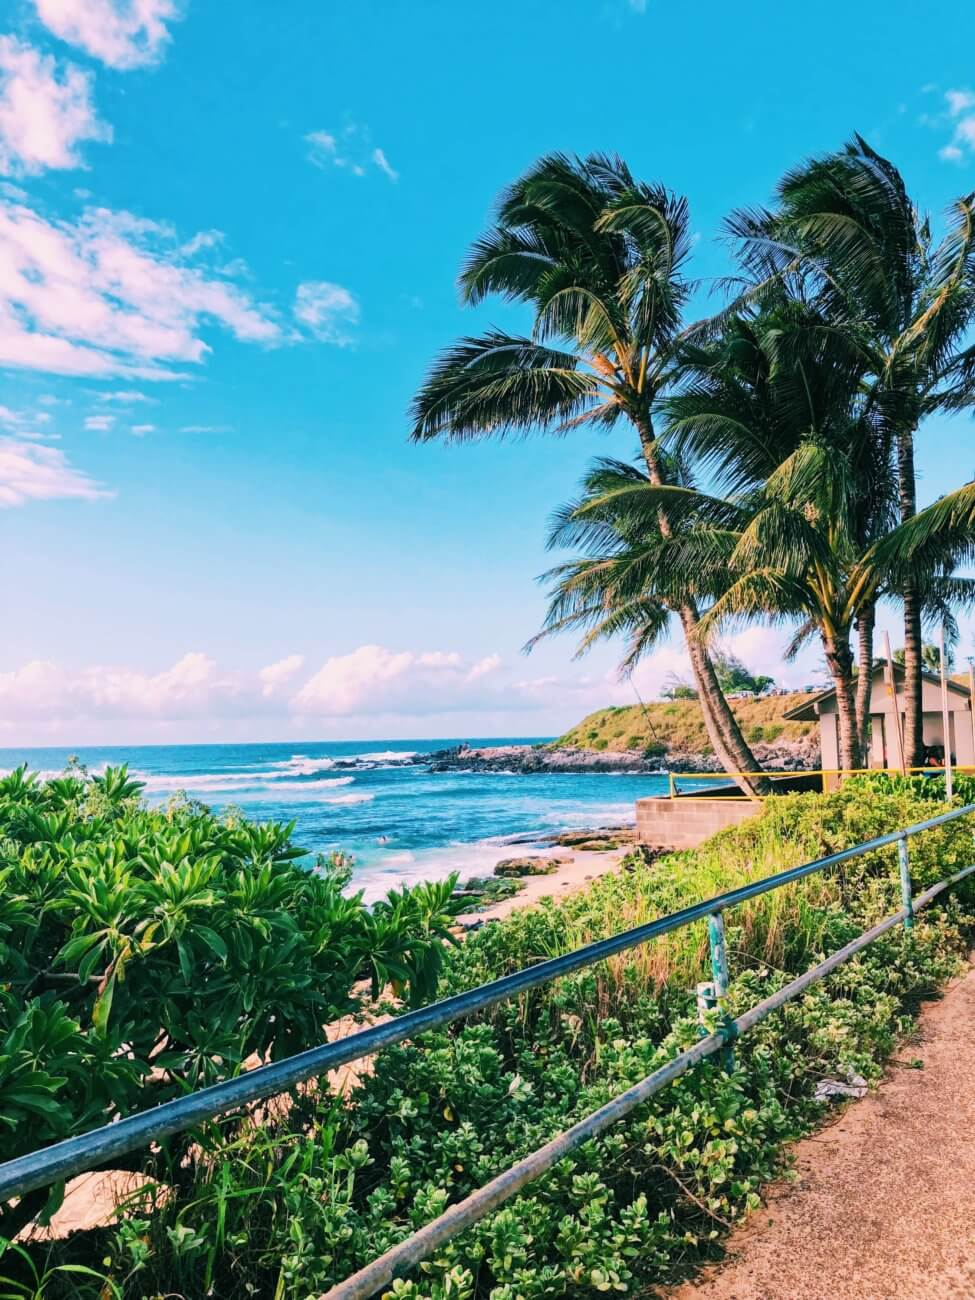 The beautiful coastal town of Paia sits along the North Shore of Maui, mixing hip surf culture and exotic jungle living with the Road to Hana beginning in this little town. In Paia, you will find the best beach in Maui with sea turtles and windsurfing, shops, boutiques, and unique restaurants. #maui #paia #hawaii #seaturtle Paia | Maui | Hawaii | Things to do in Paia | Things to do in Maui | Where to go in Maui | Sea turtles in maui | Things to do in hawaii | where to go in hawaii | Road to Hana